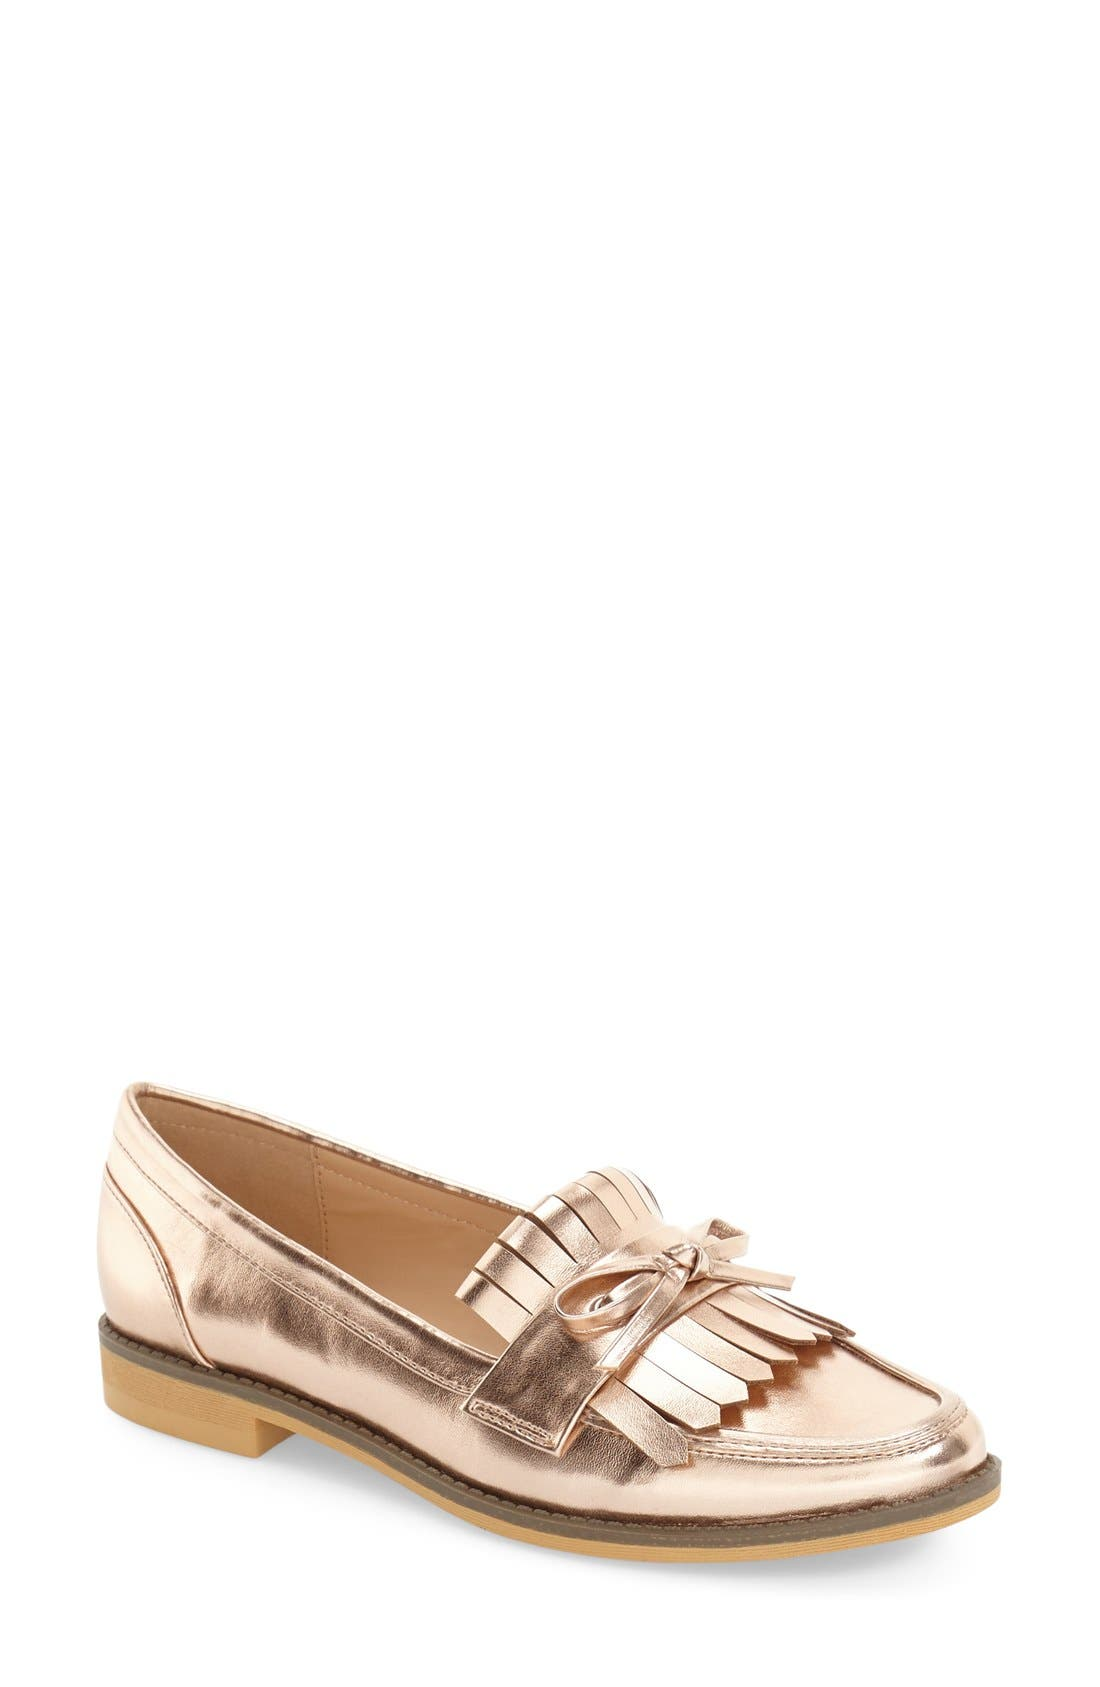 Main Image - Sole Society 'Huxley' Loafer (Women)